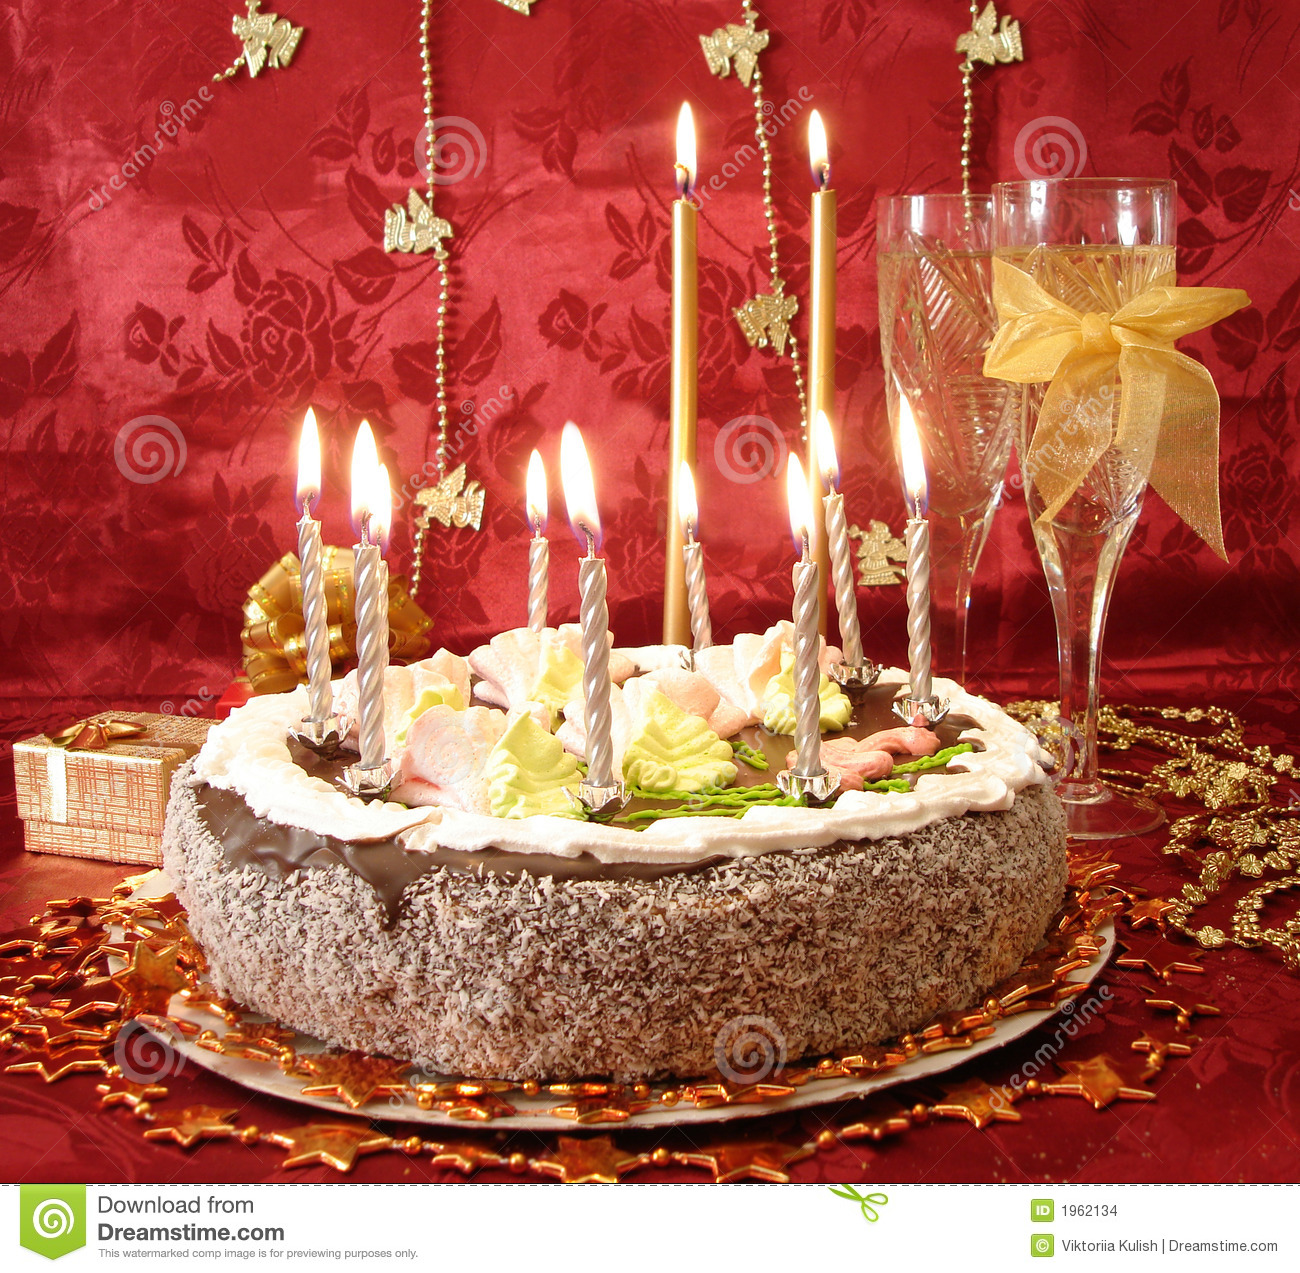 Celebratory Table Cake And Candles Two Glasses With